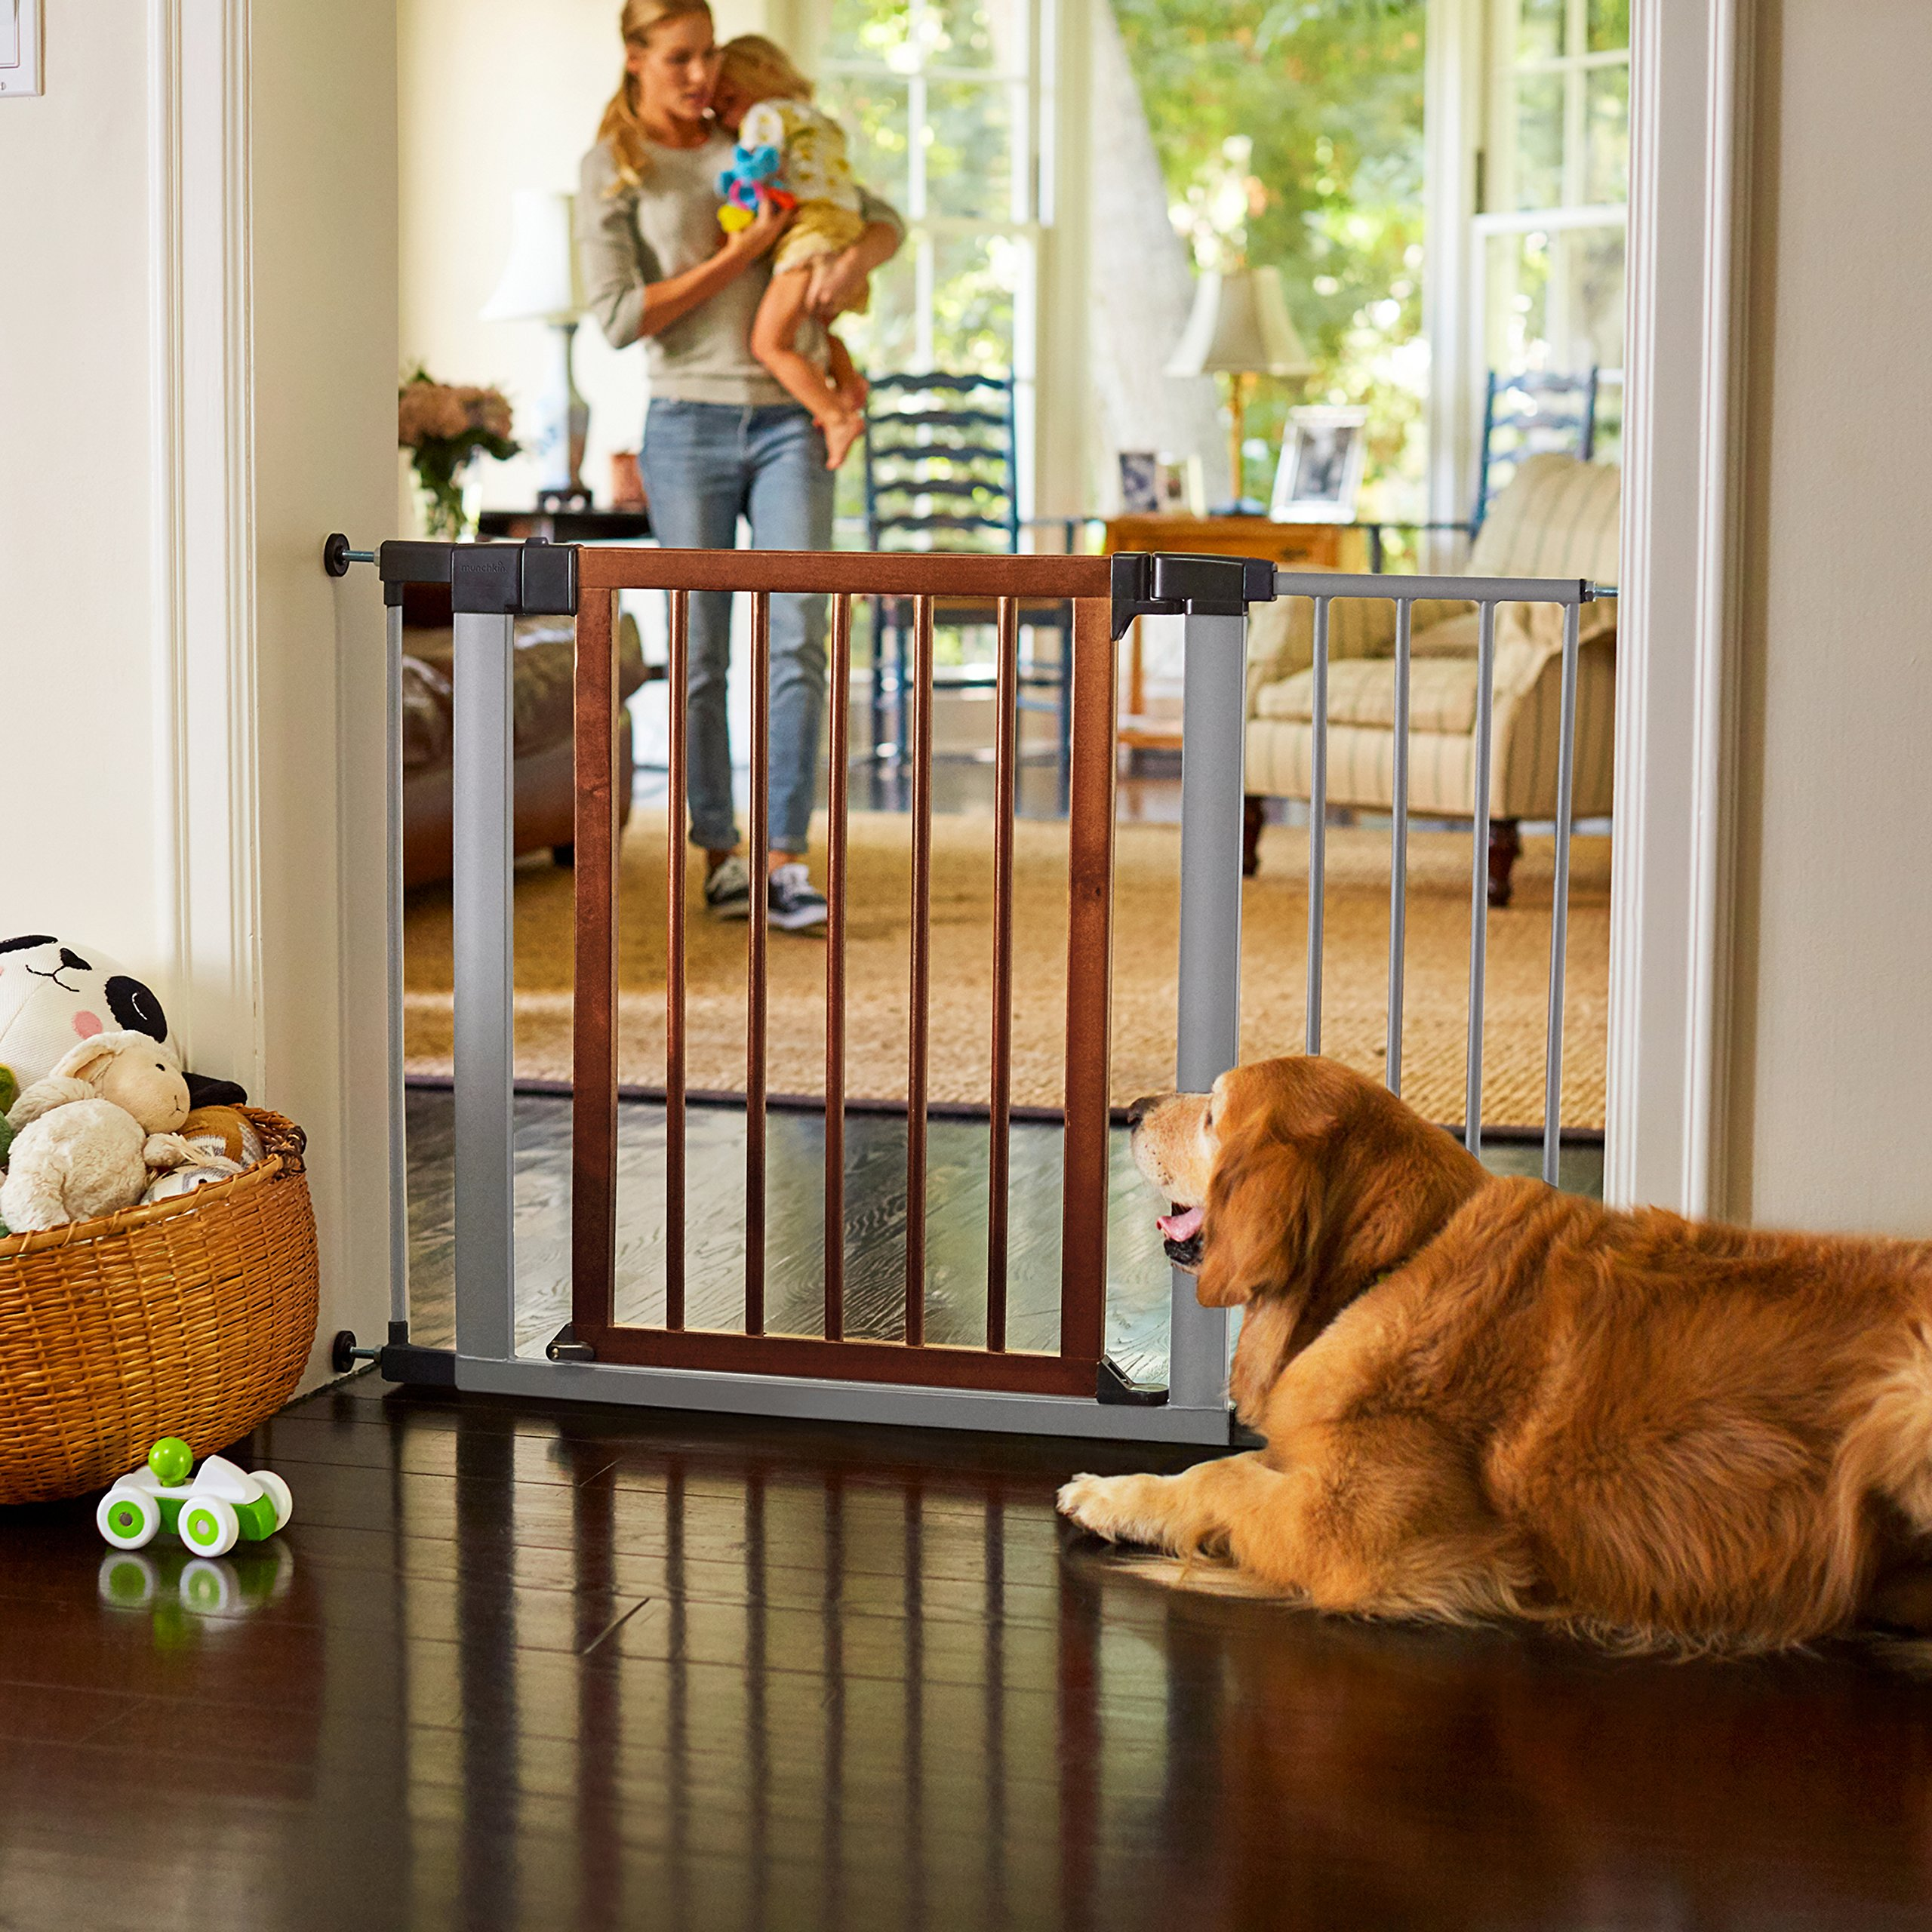 Munchkin Wood And Steel Baby Gate Extension 5 5 34486 Gates